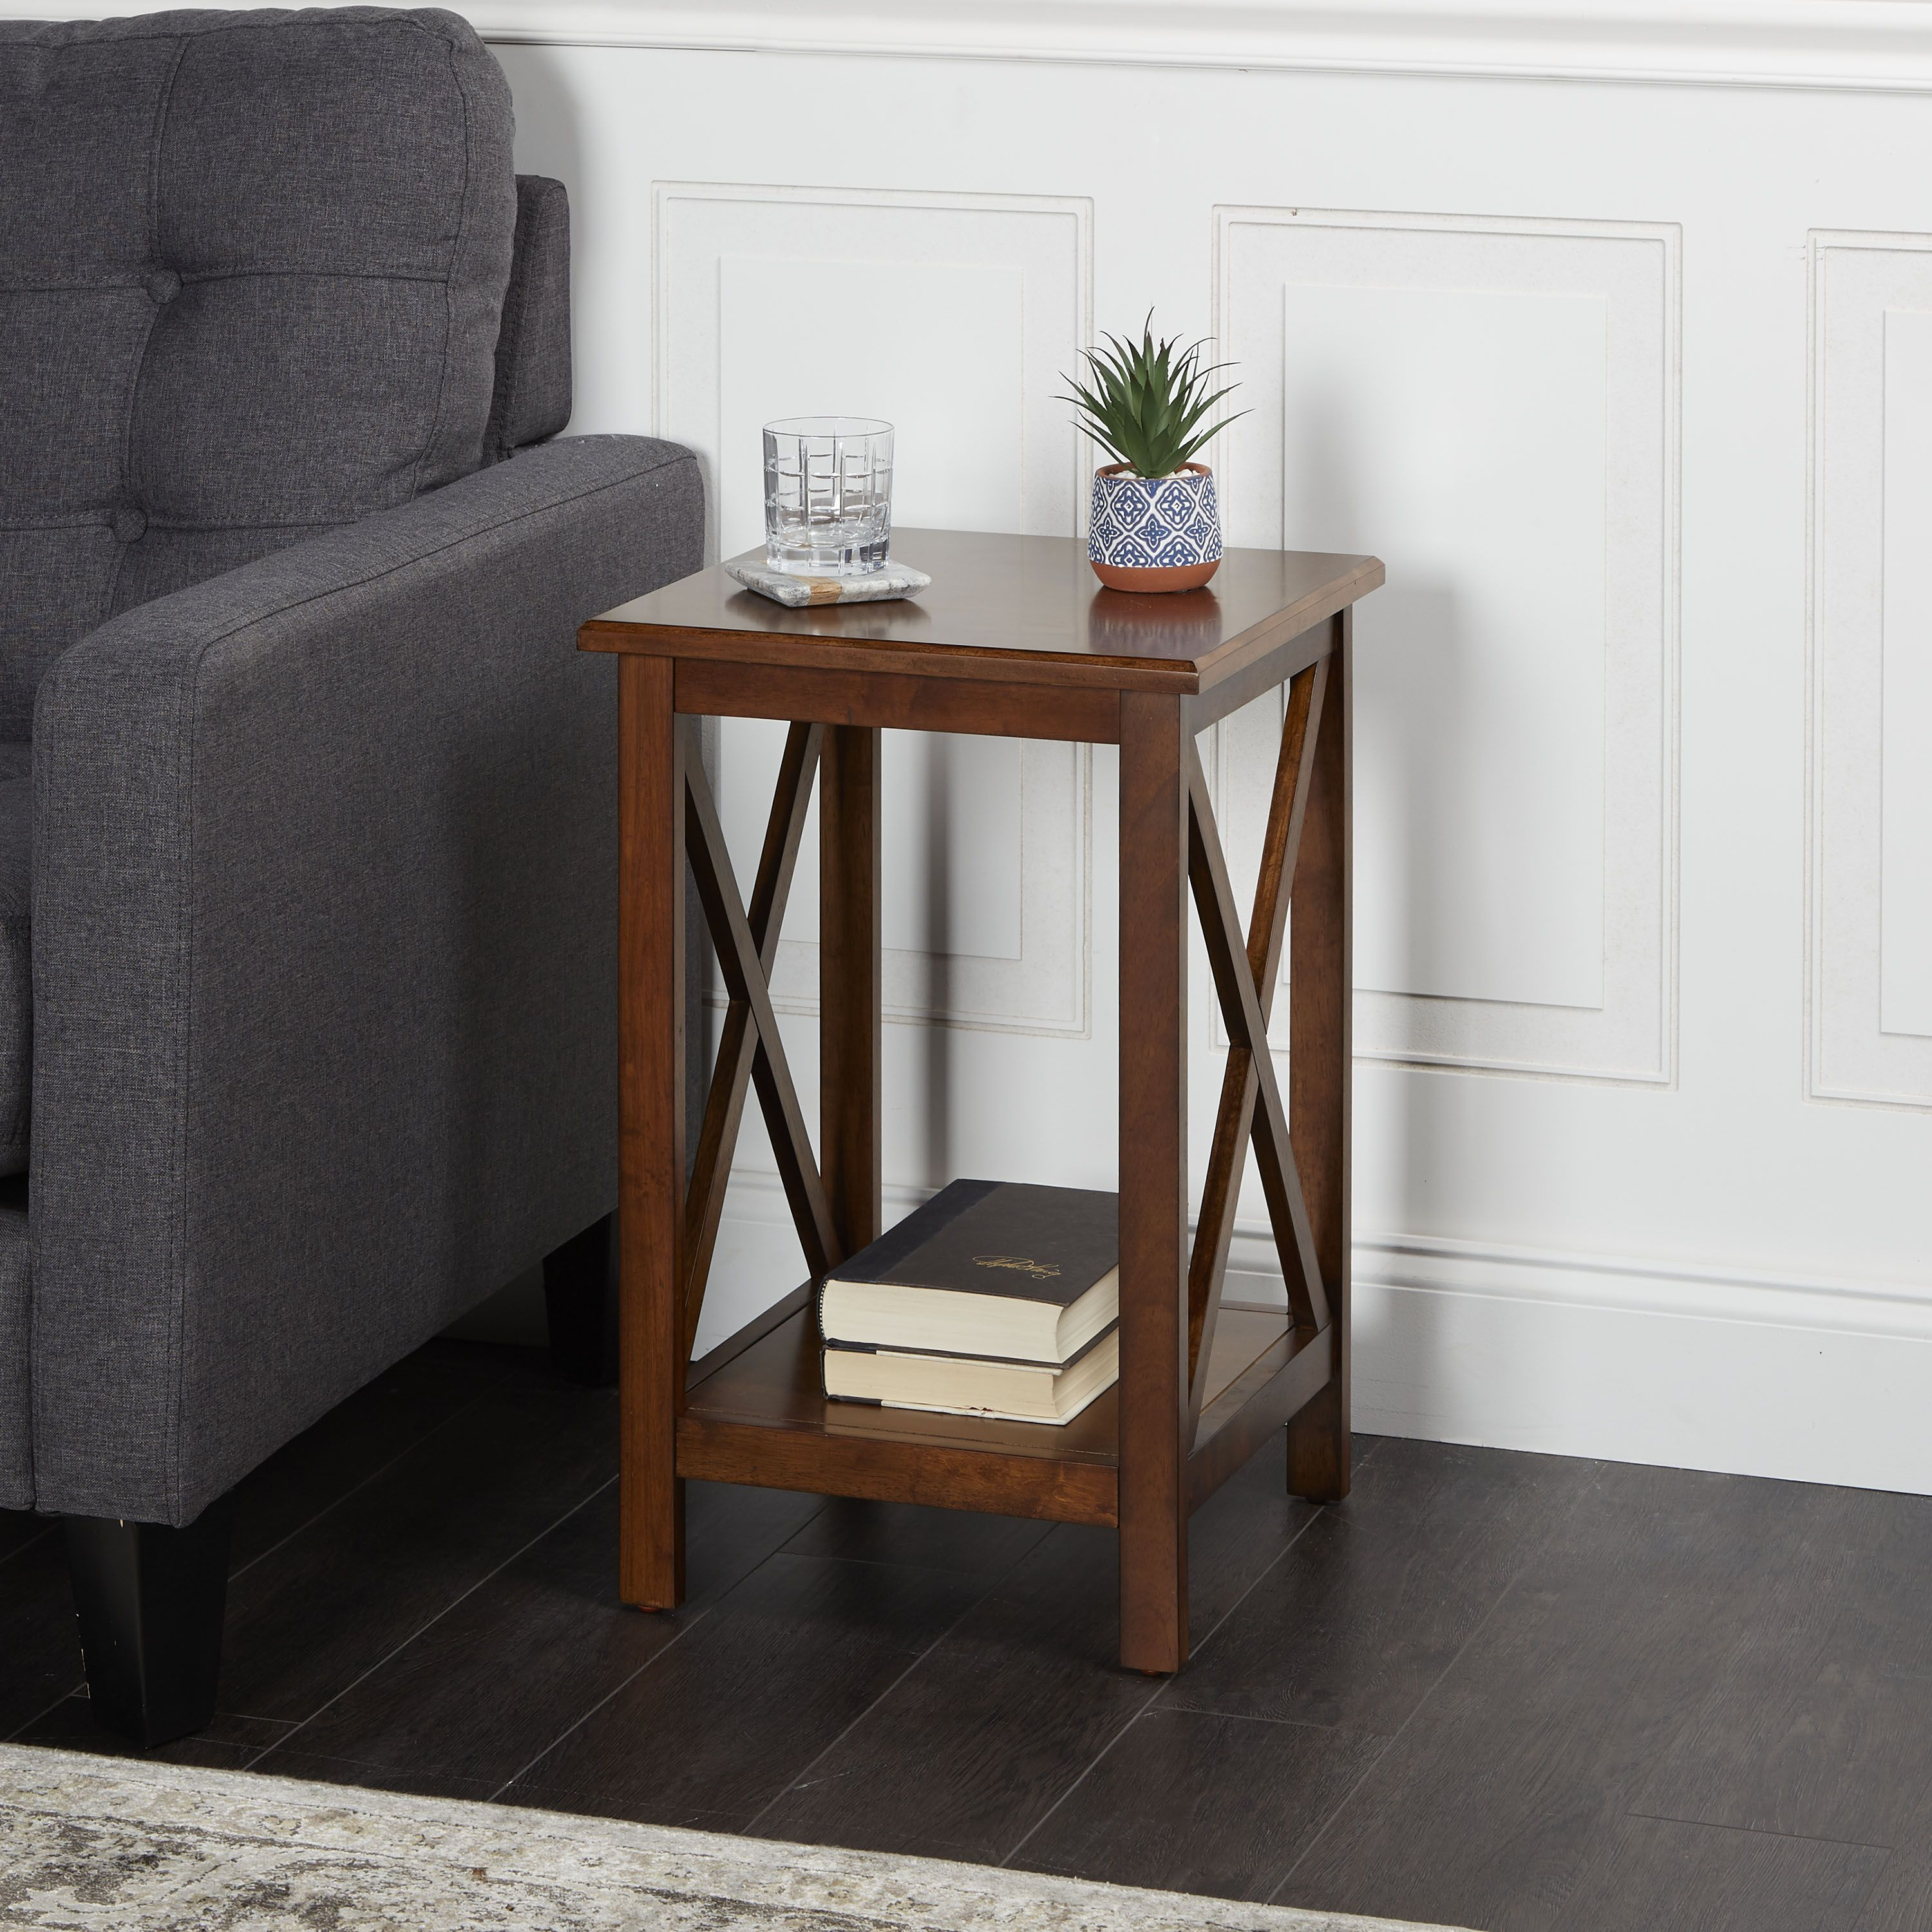 Better Homes Gardens Square Table Cherry Wood Walmart Com End Tables Square Tables Better Homes [ 3000 x 3000 Pixel ]